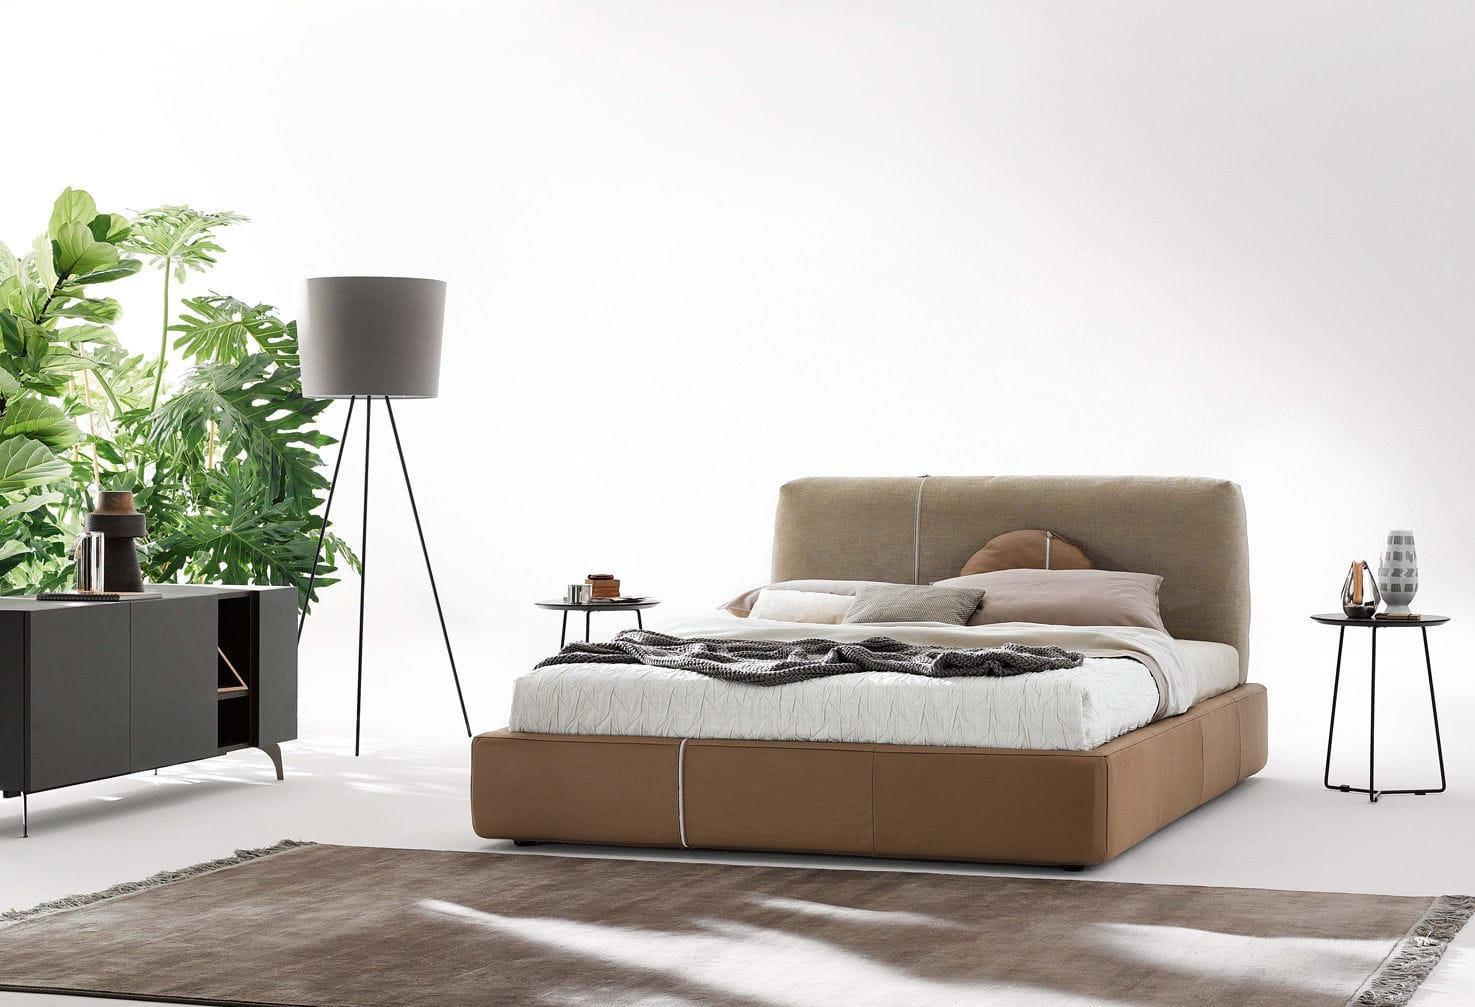 Letto matrimoniale / moderno / in tessuto / 180x200 cm - SANDERS by ...